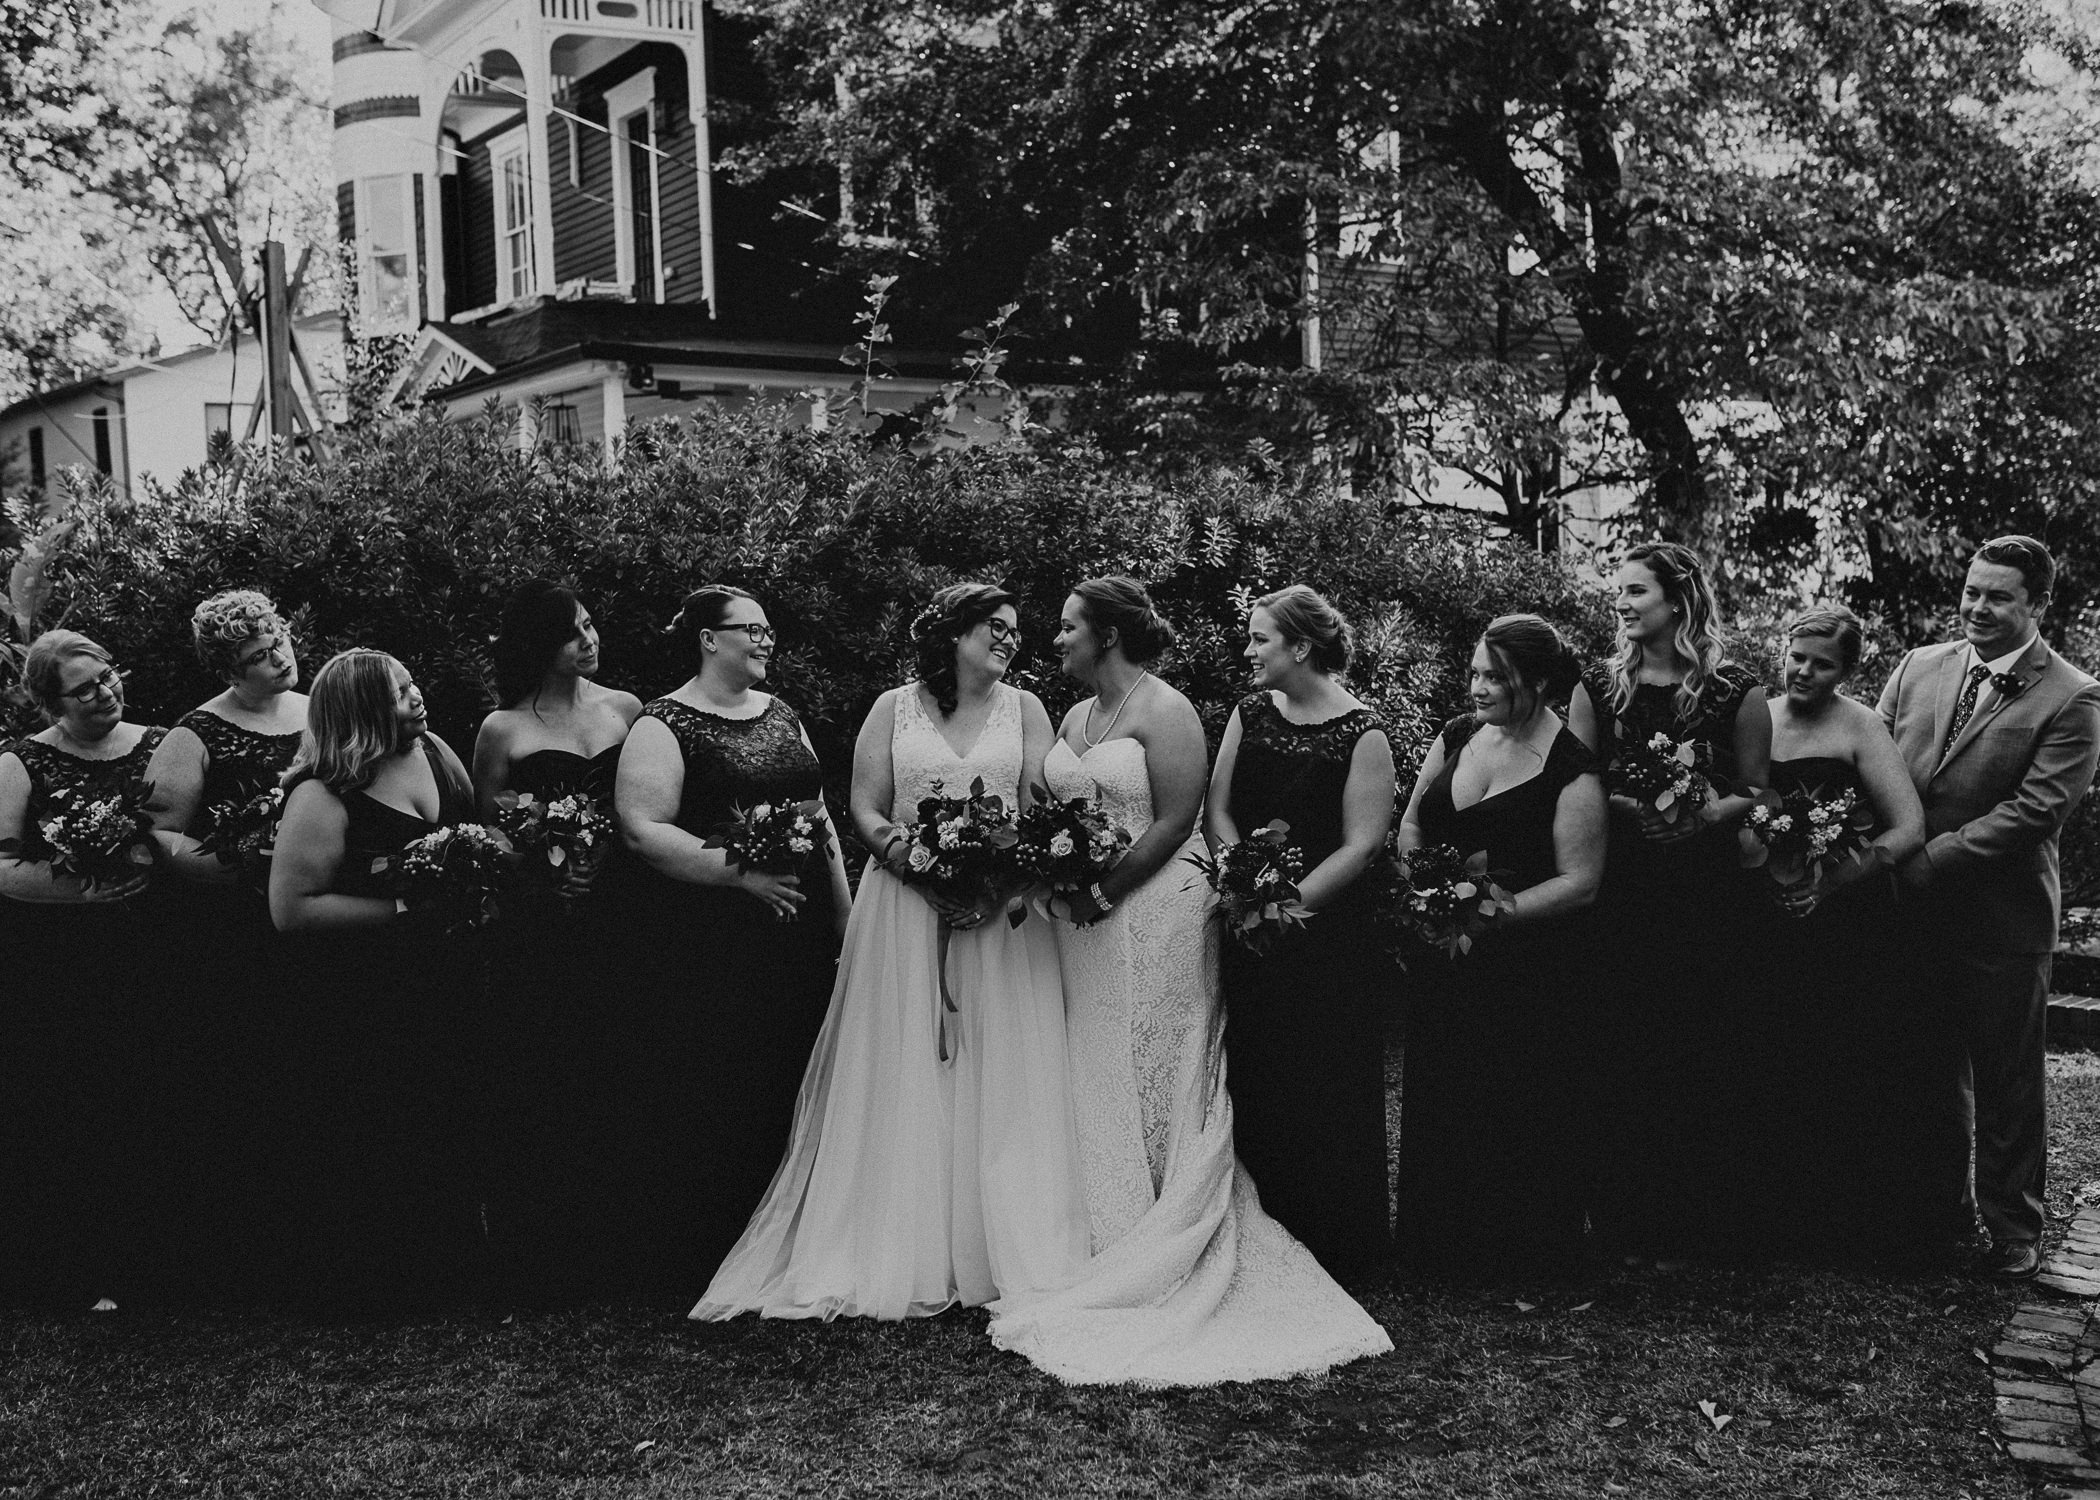 55 - Atlanta wedding photographer - Same sex wedding - wedding dress - details - ceremony - reception - bridal party - two brides. Aline Marin Photography .jpg.JPG